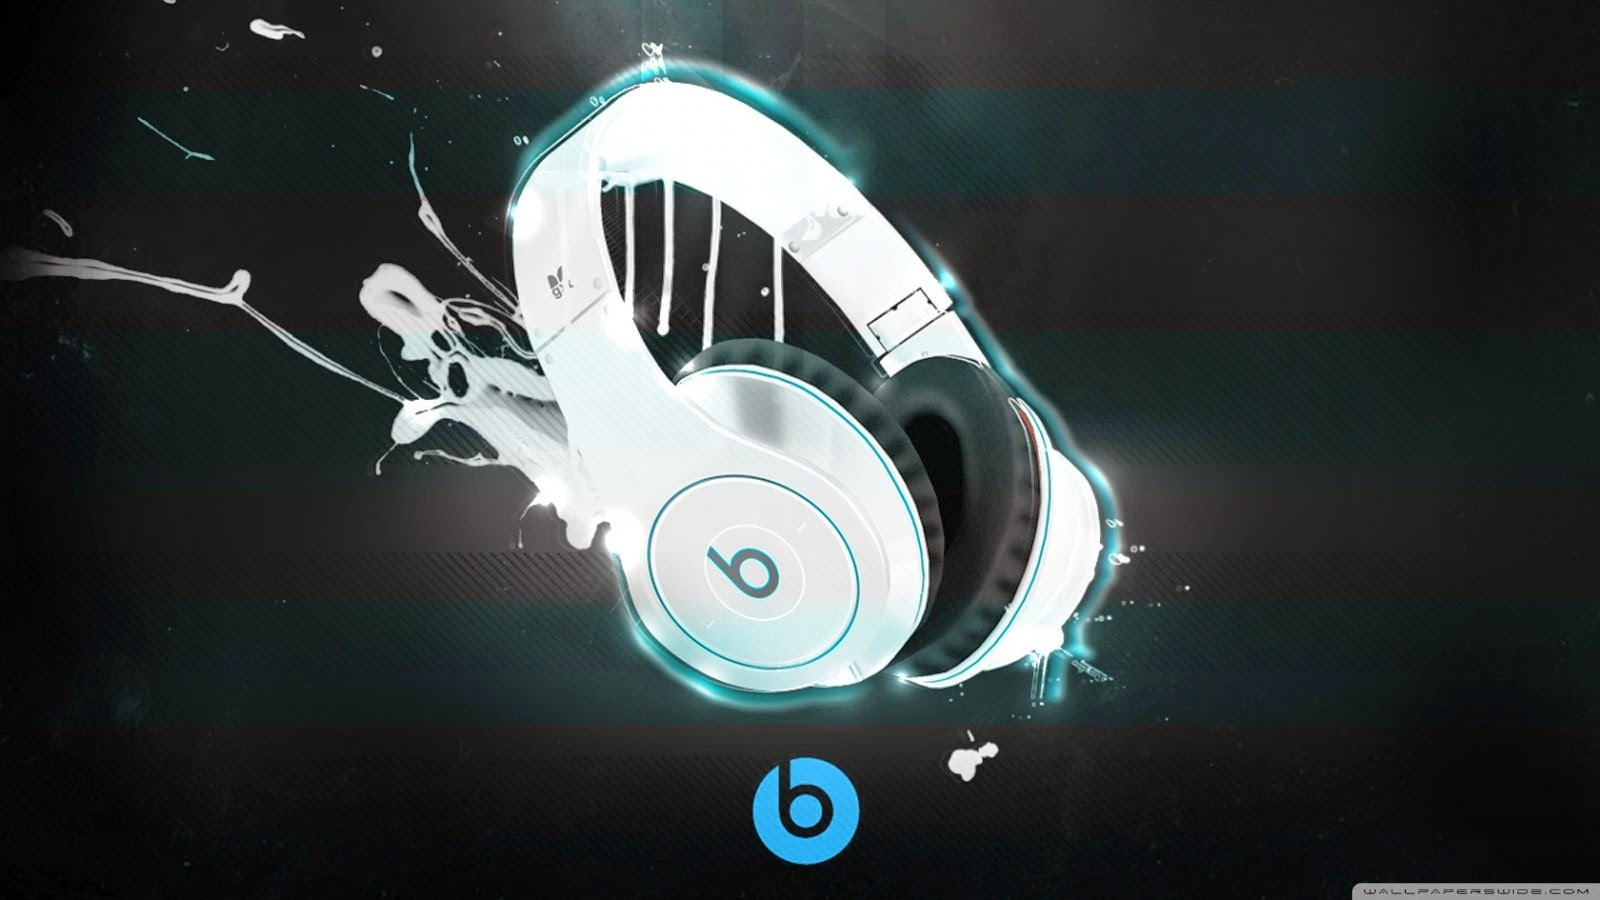 Beats-by-Dre-Headphones-WallSheets-Desktop-and-Backgrounds-wallpaper-wp4604101